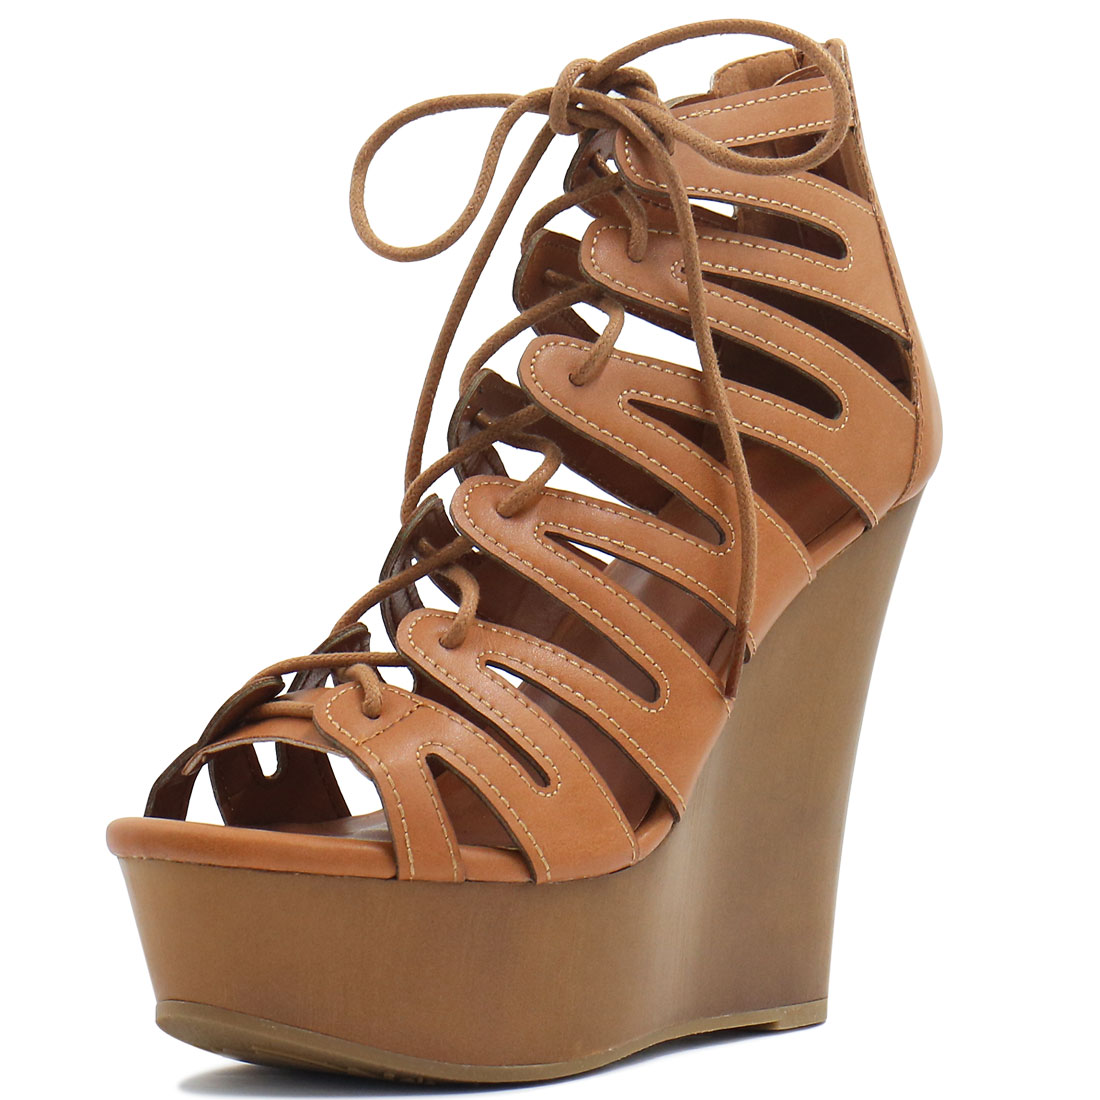 Woman Open Toe Lace-Up Cutout Platform Wedge Sandals Brown US 6